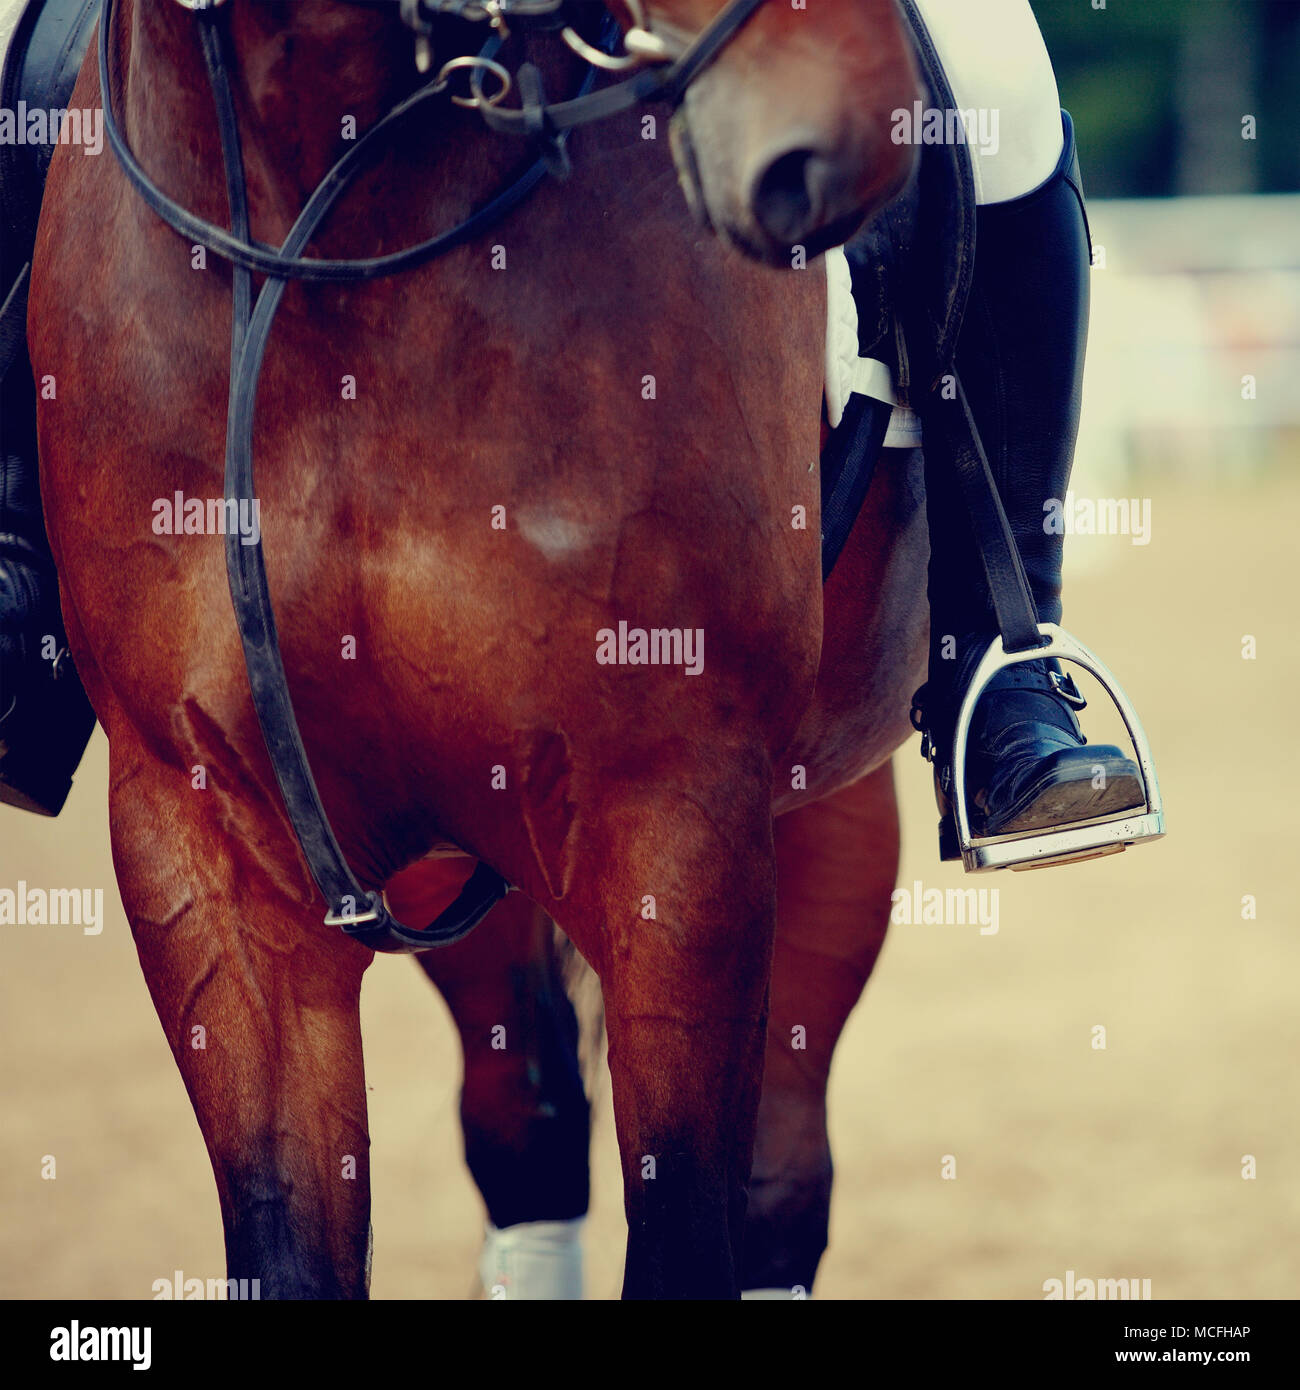 Foot of the athlete in a stirrup astride a horse - Stock Image